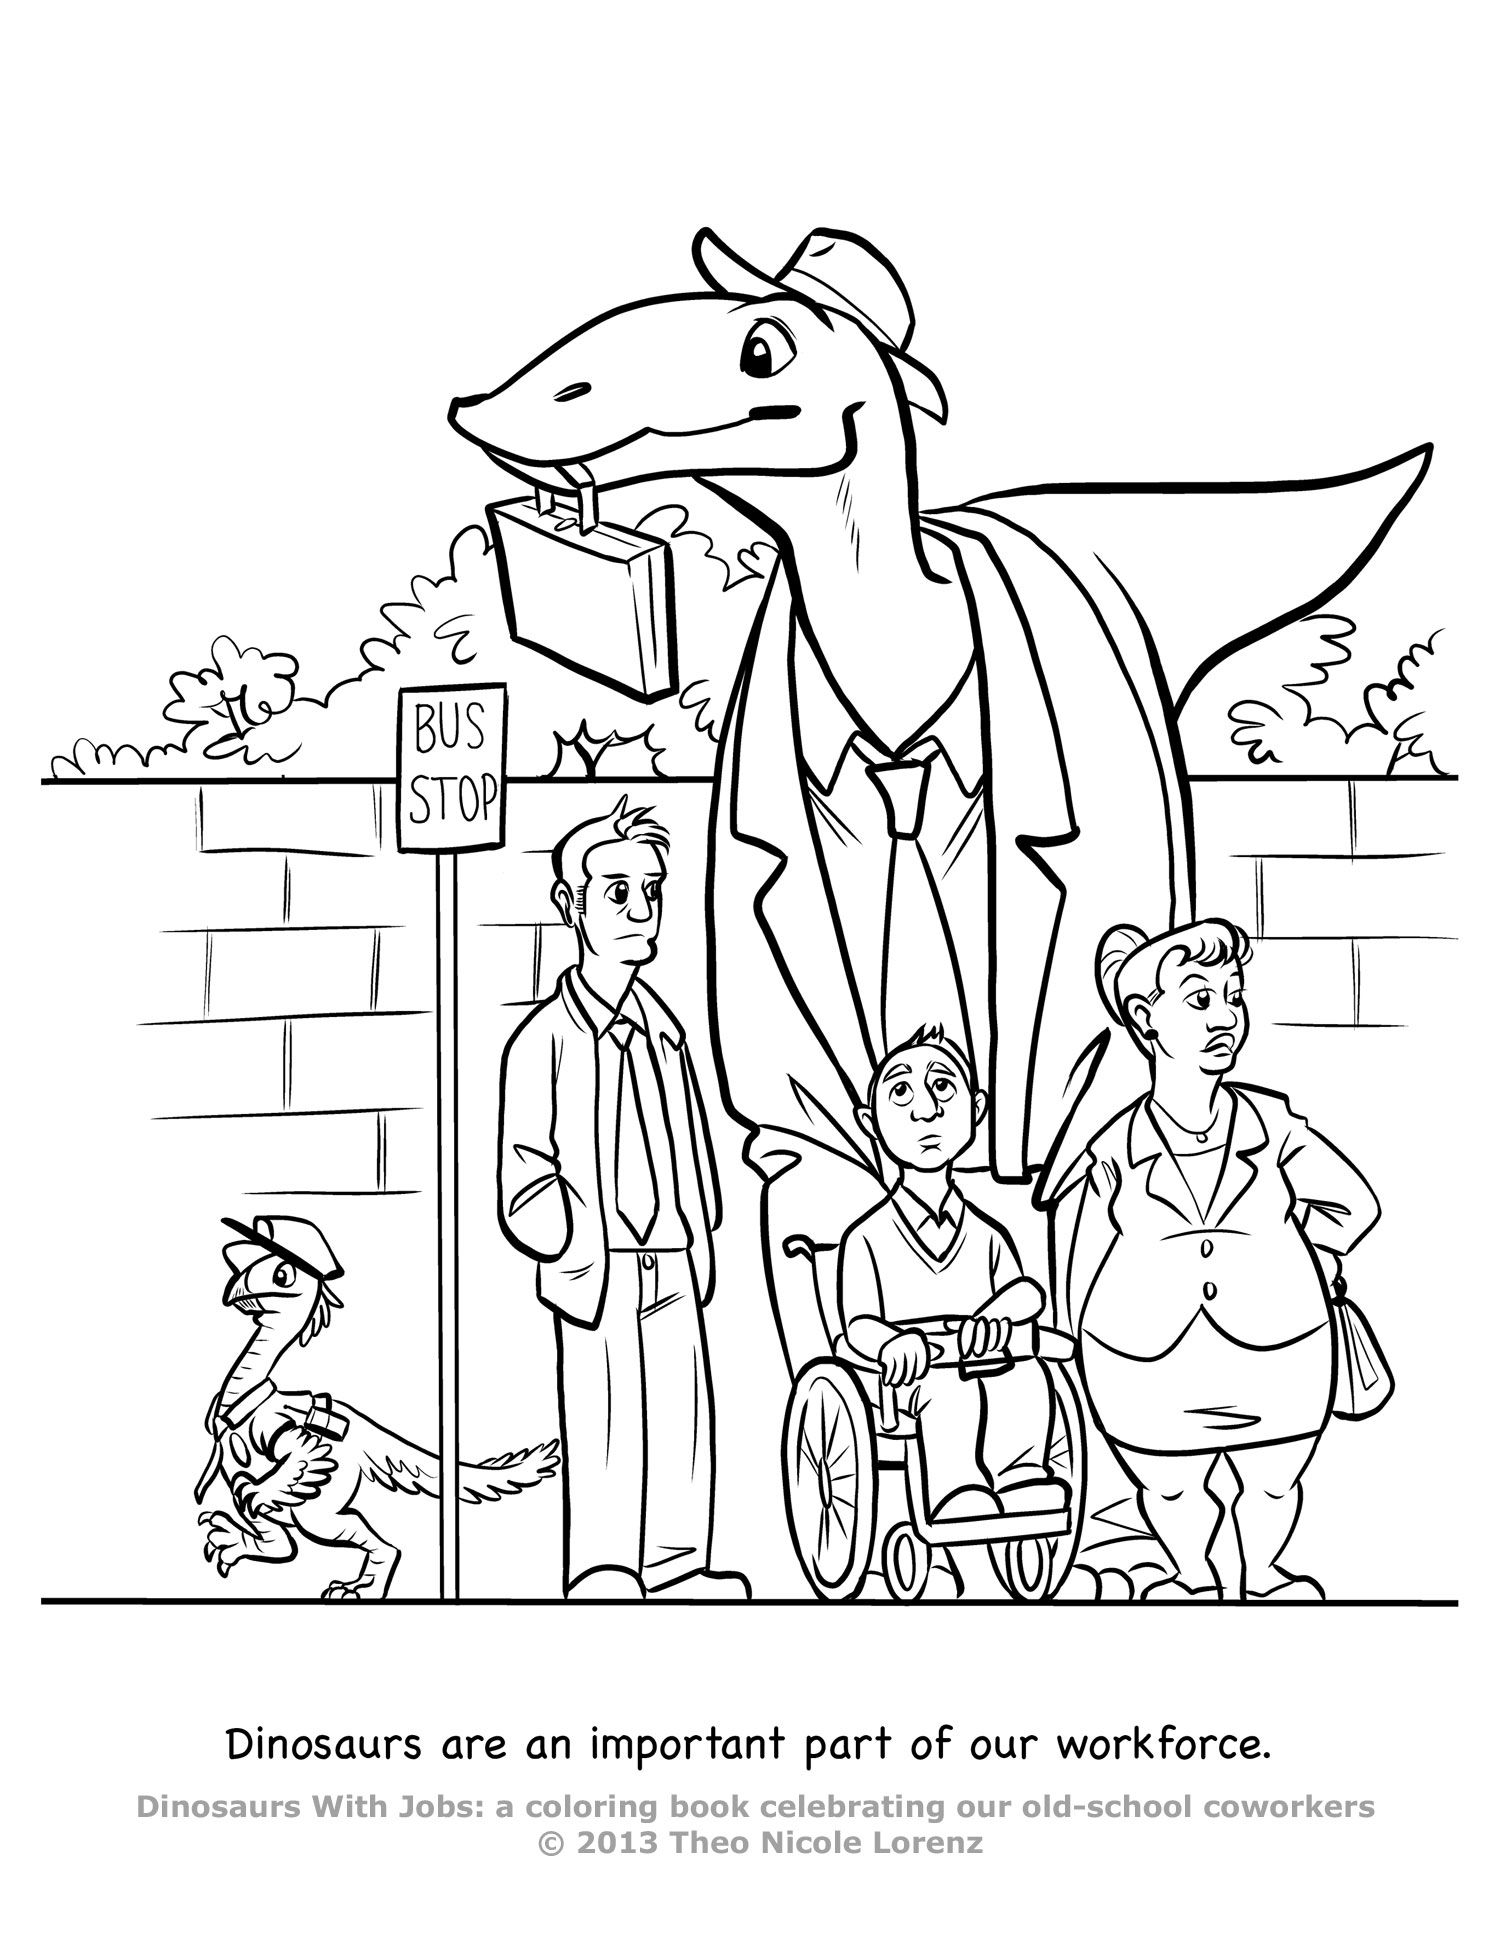 dinosaurs with jobs coloring book - Unicorns Are Jerks Coloring Book